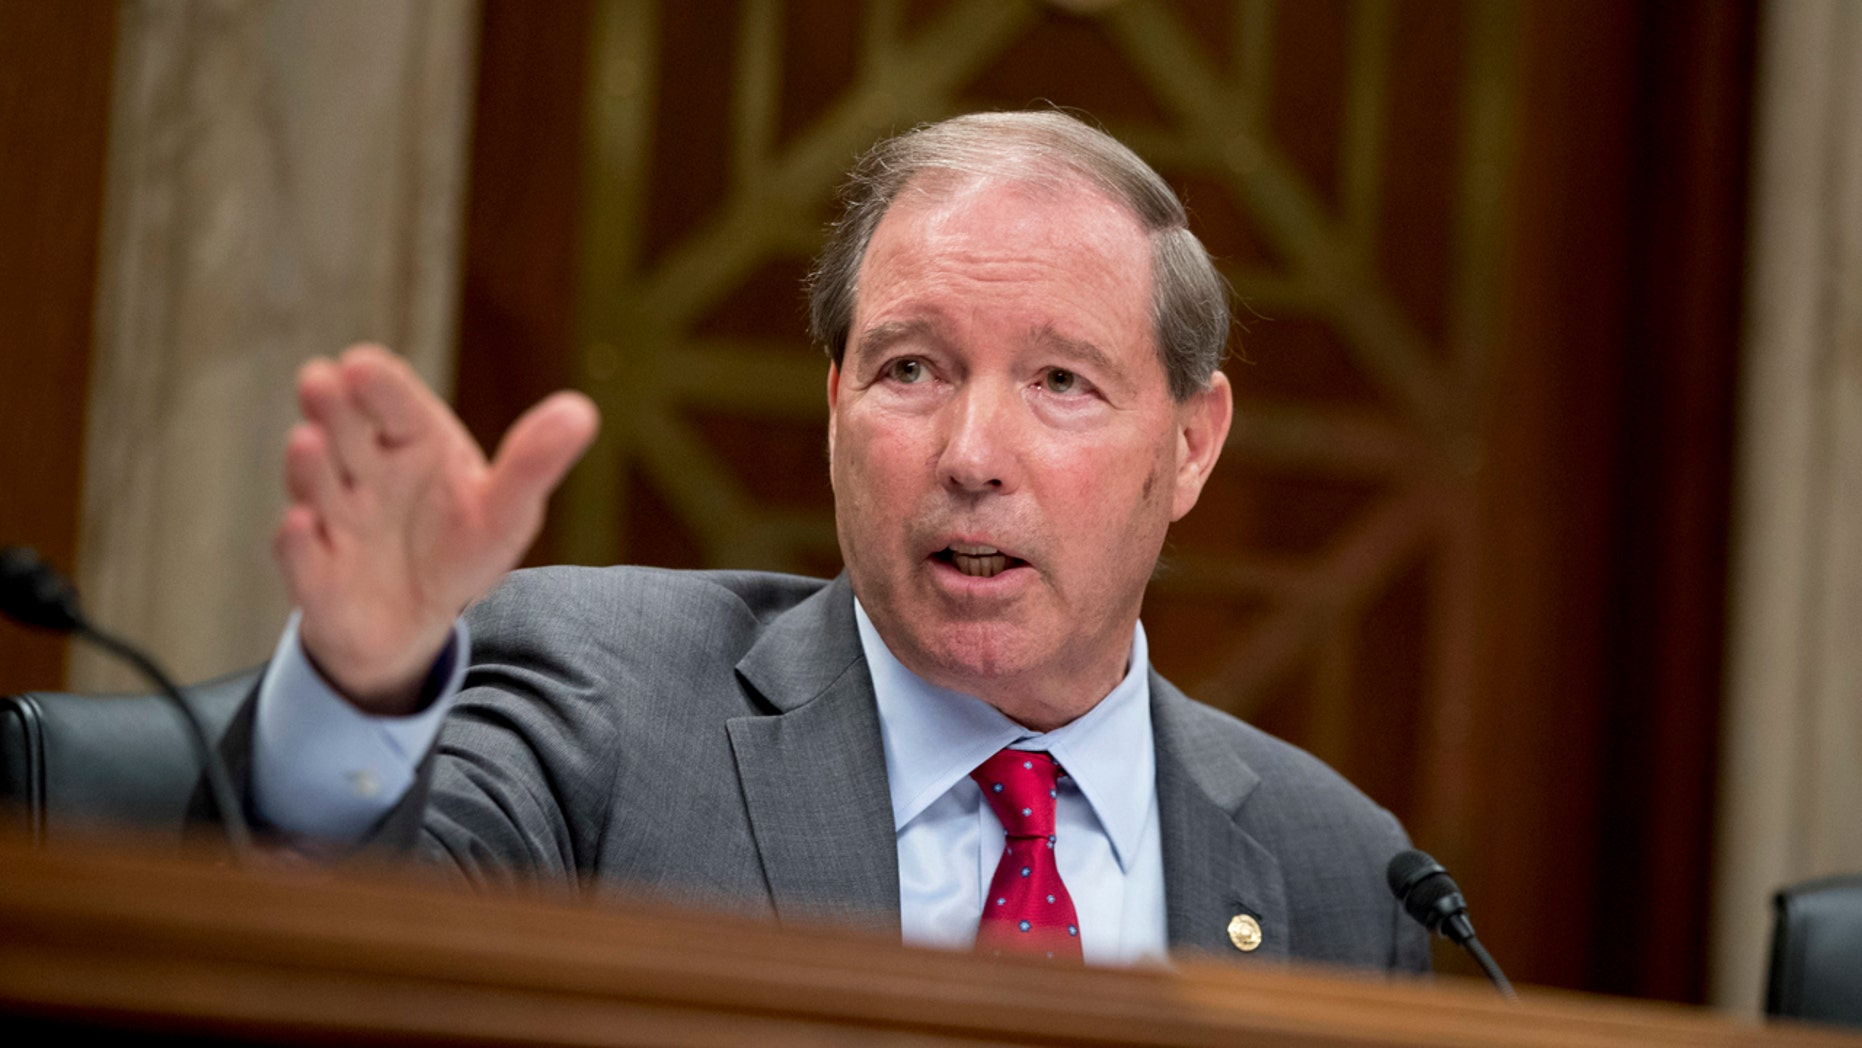 Sen. Tom Udall, D-N.M., seen here in 2018, announced he won't seek re-election. (AP Photo/Andrew Harnik, File)